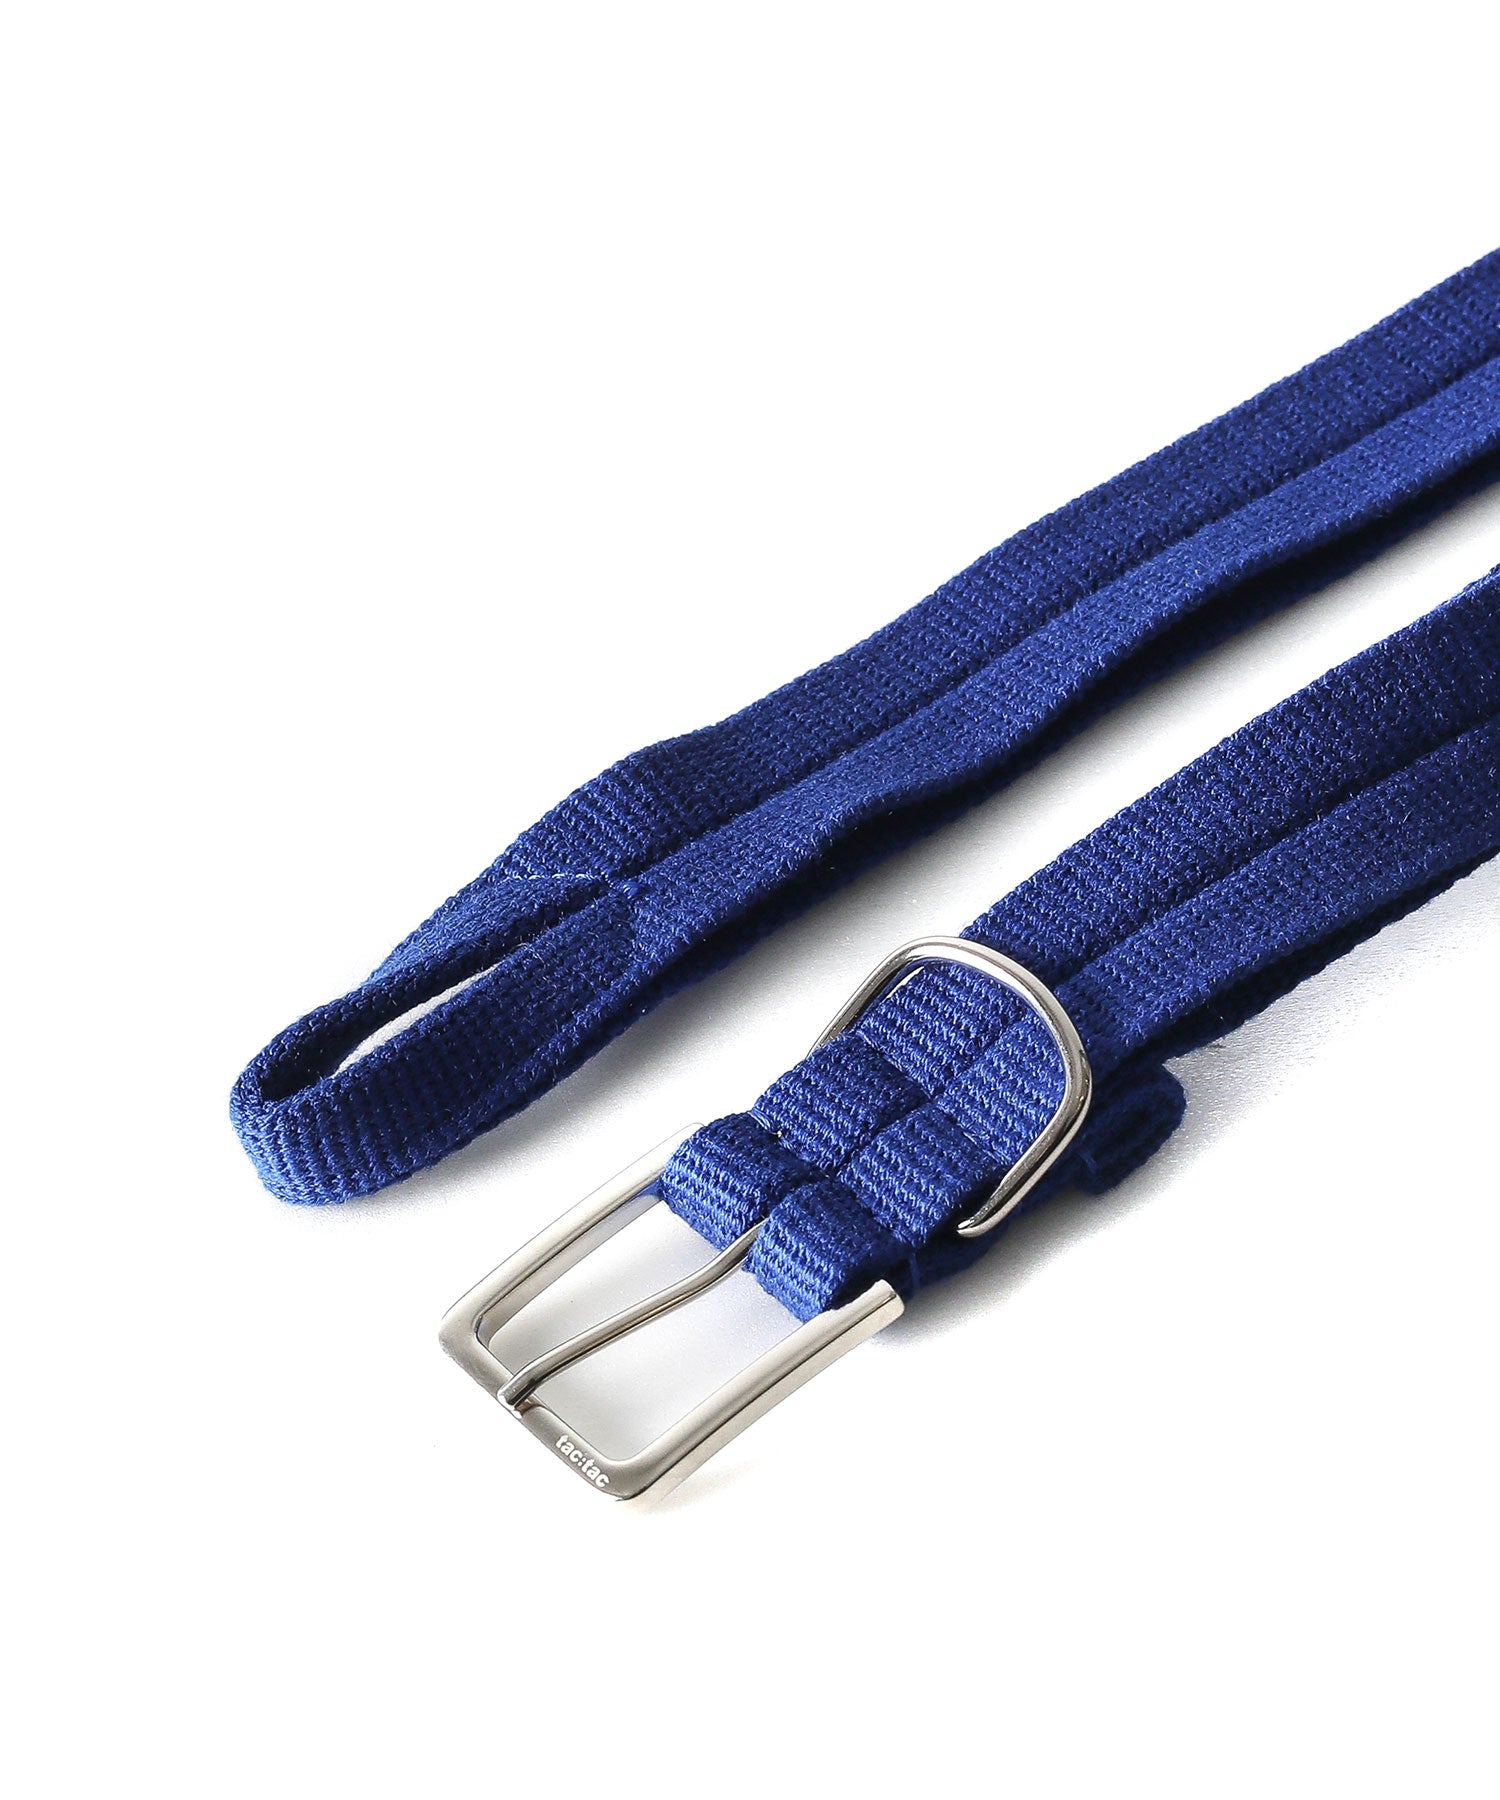 tac:tac タクタク HOLELESS BELT BLUE 公式通販 session